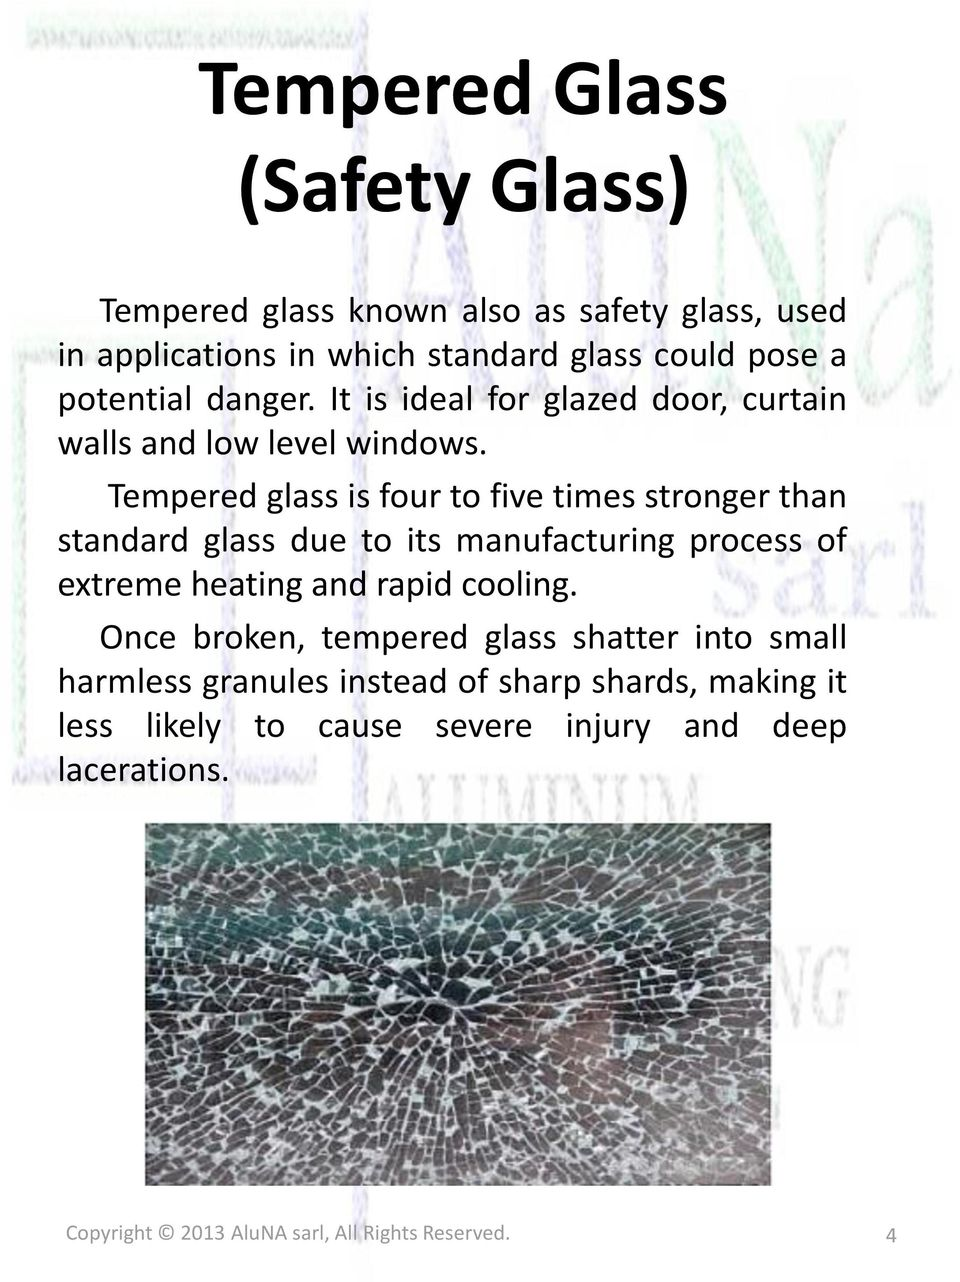 Tempered glass is four to five times stronger than standard glass due to its manufacturing process of extreme heating and rapid